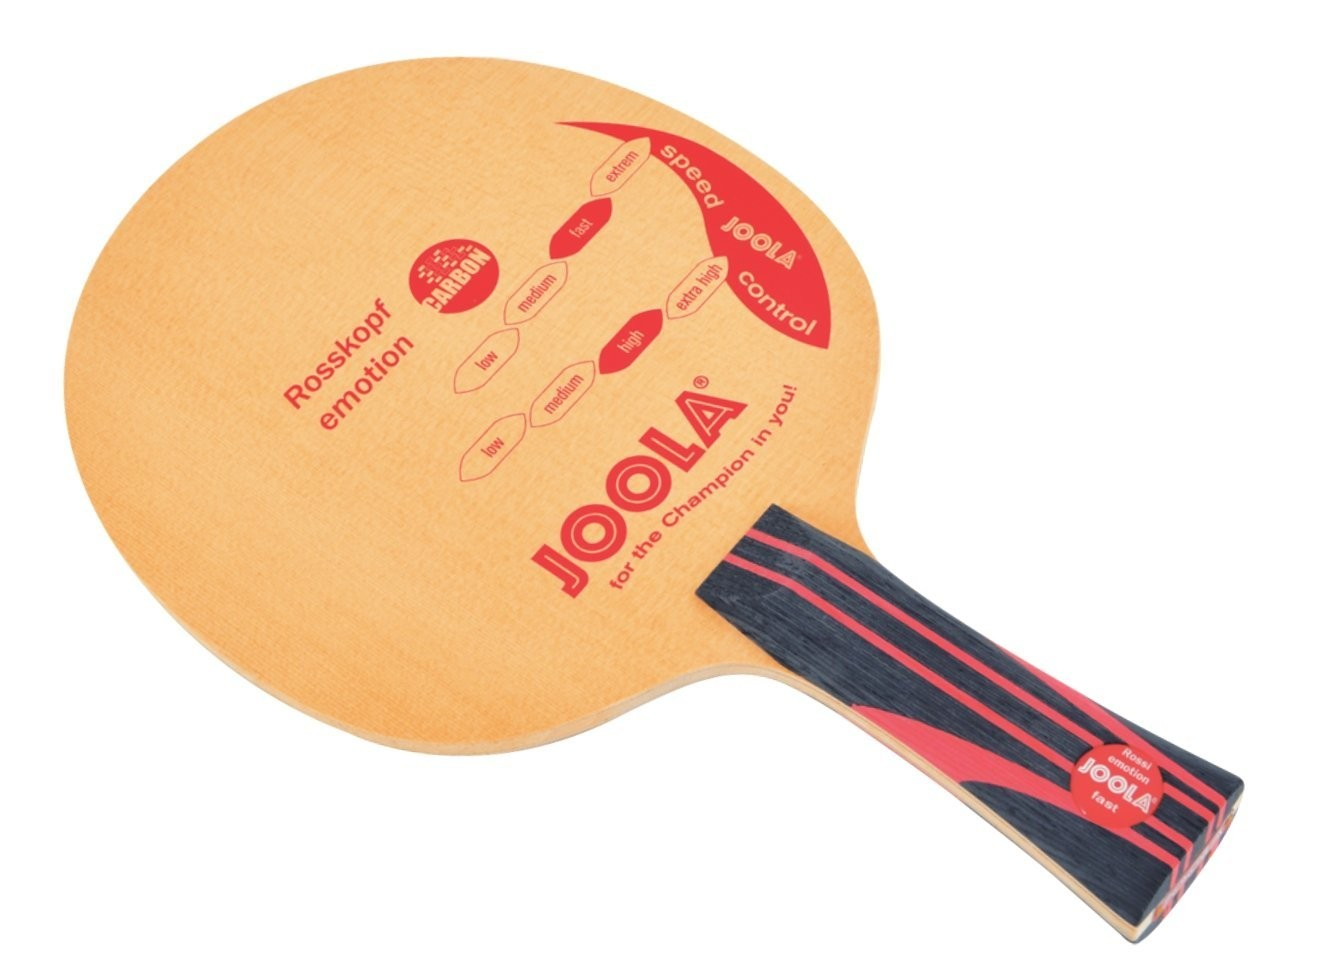 Joola Rosskopf Emotion TT Bat